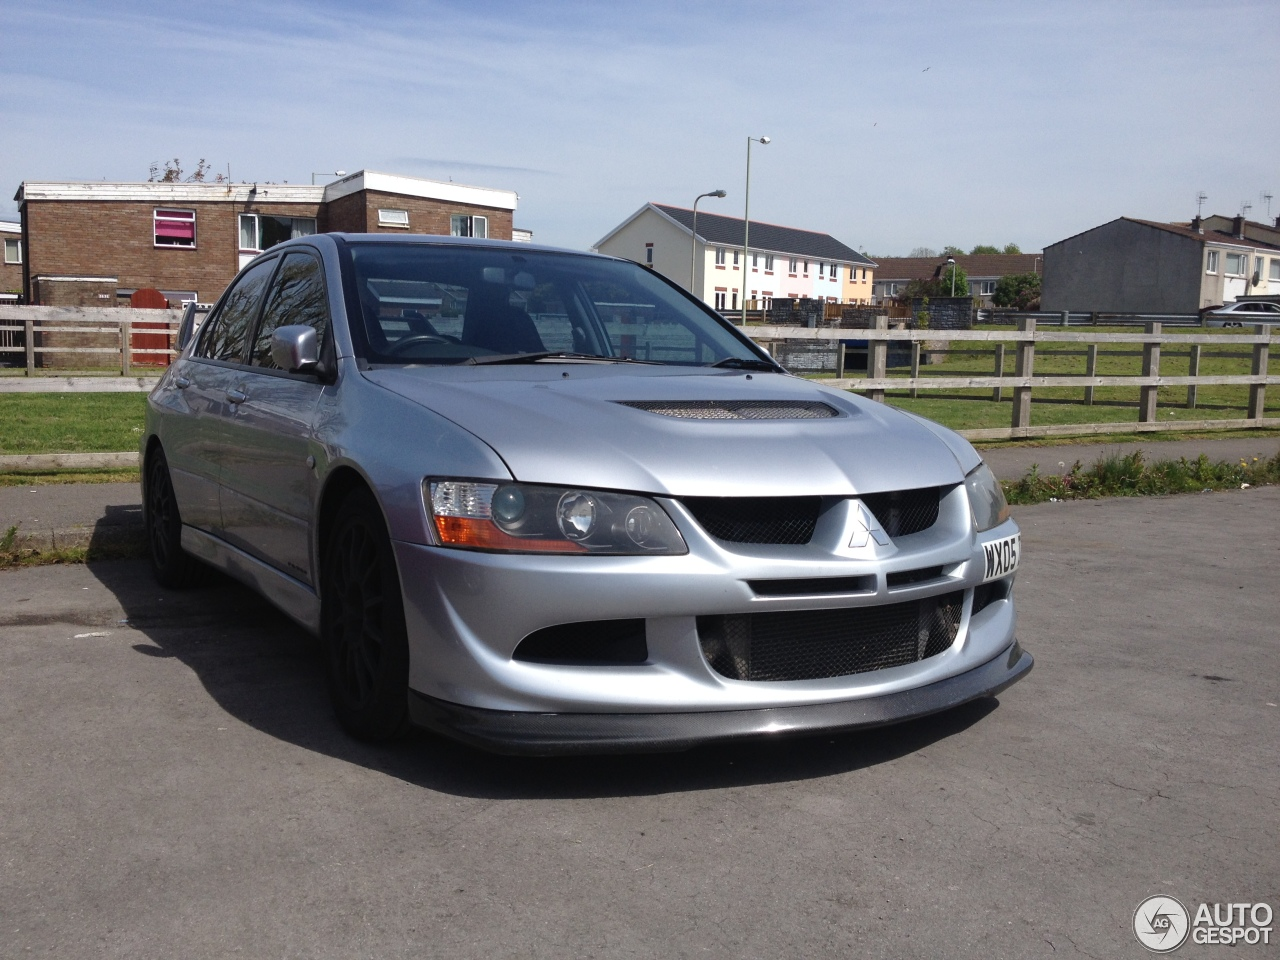 mitsubishi lancer evolution viii mr fq 320 4 may 2014 autogespot. Black Bedroom Furniture Sets. Home Design Ideas